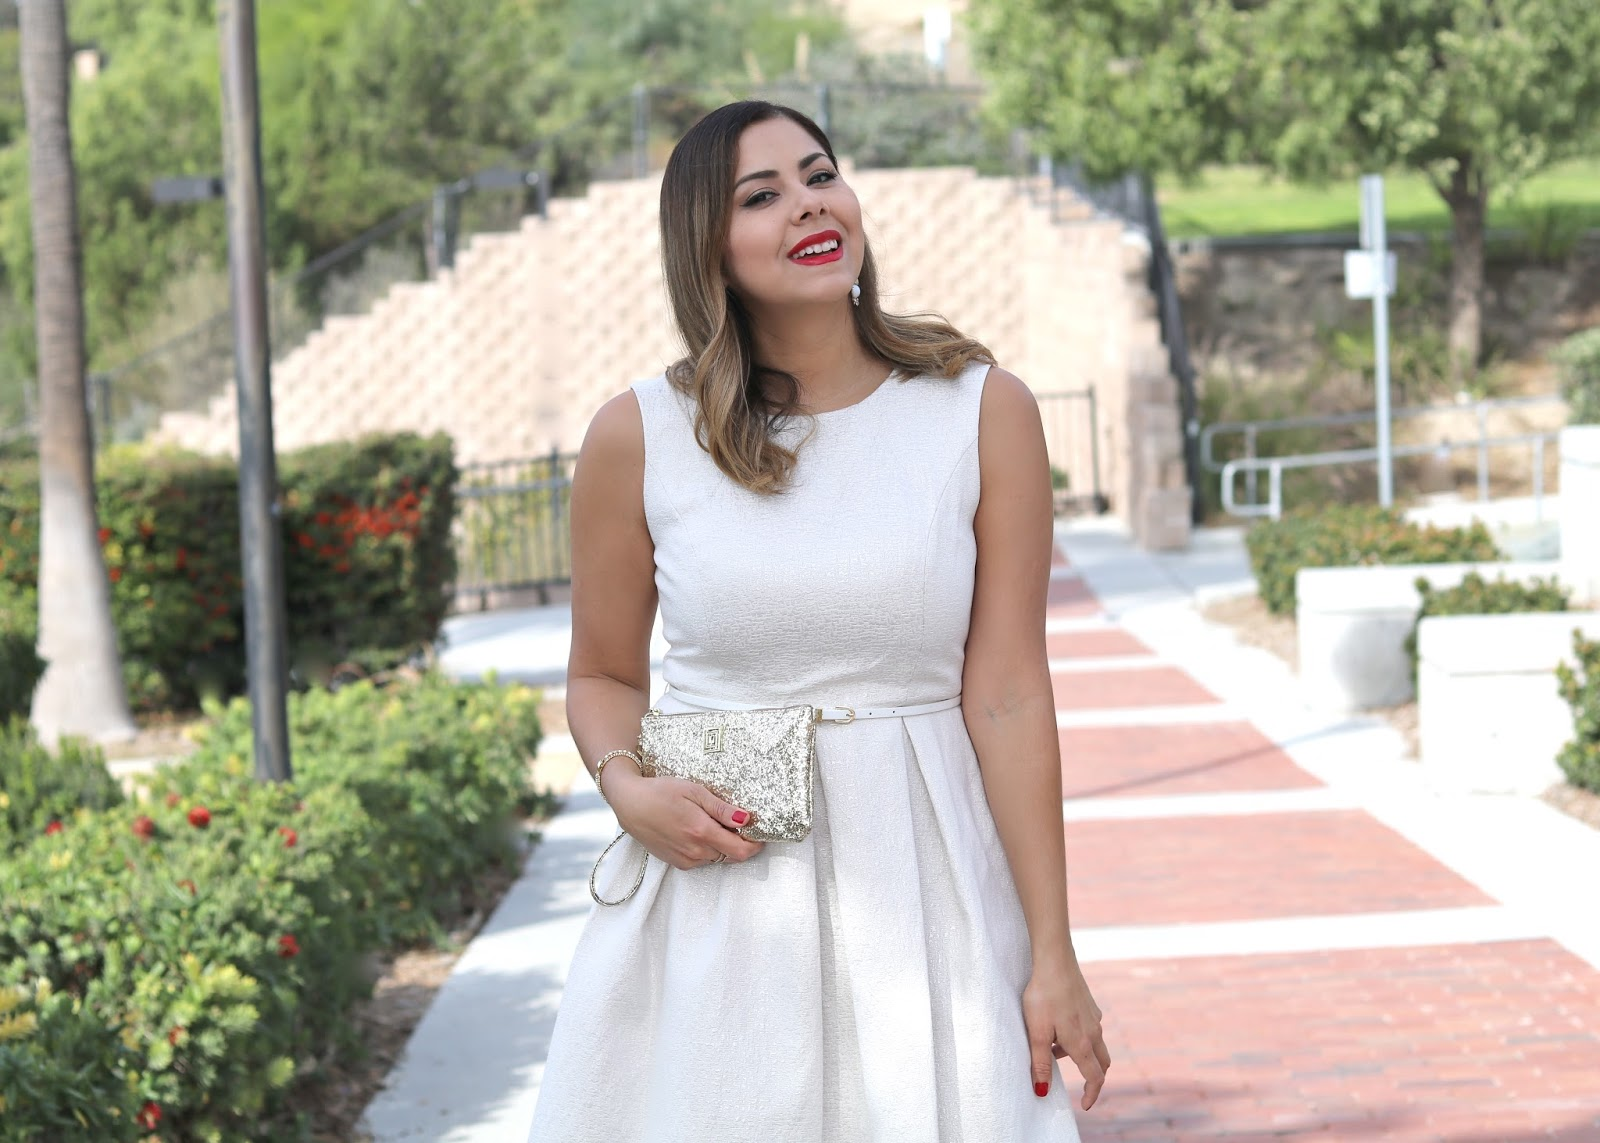 Red lipstick and white dress, what to wear this Holiday Season, Holiday lookbook